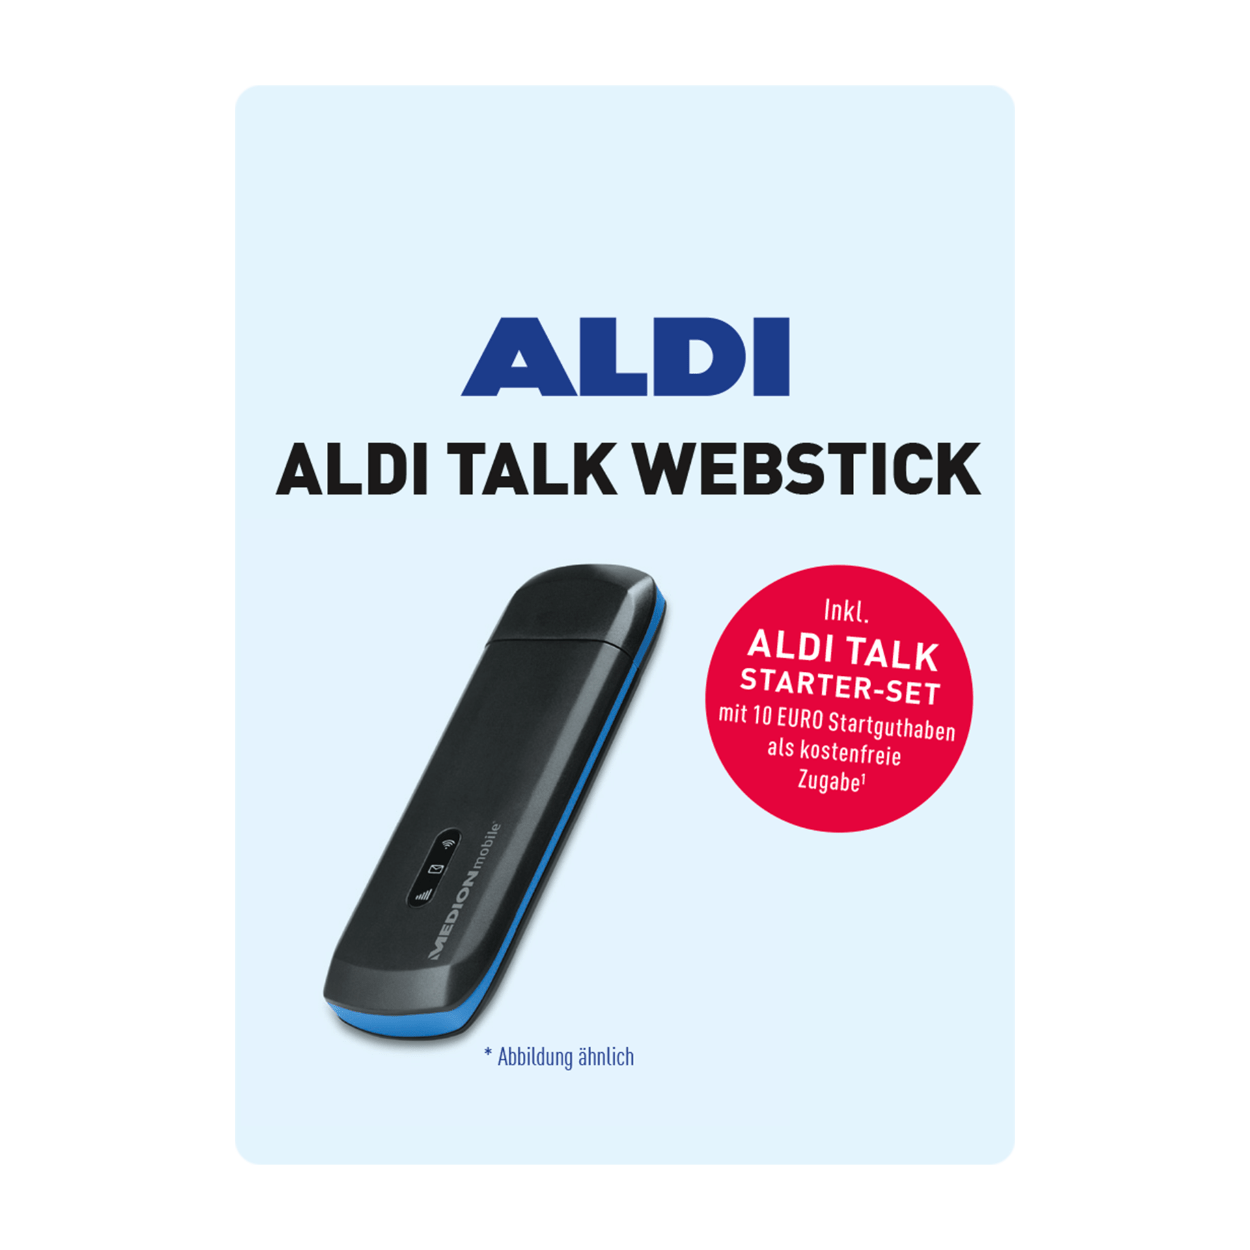 Aldi Talk Sim Karte Kaufen.Aldi Talk Webstick